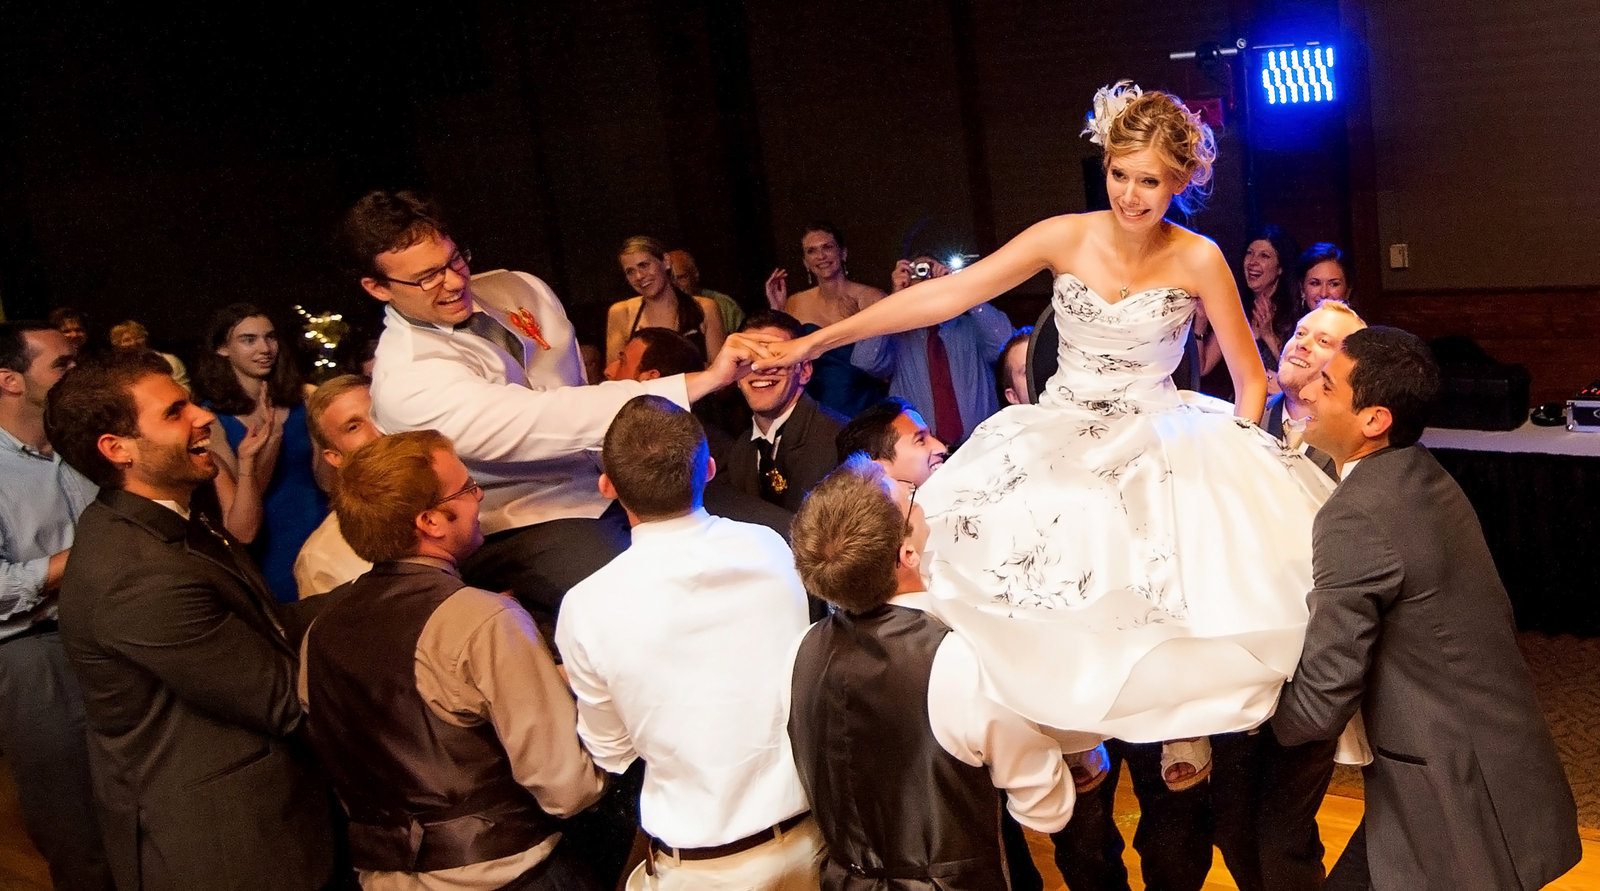 The bride holds onto her new husband during the Horah dance at Starved Rock Lodge near Utica, Illinois.